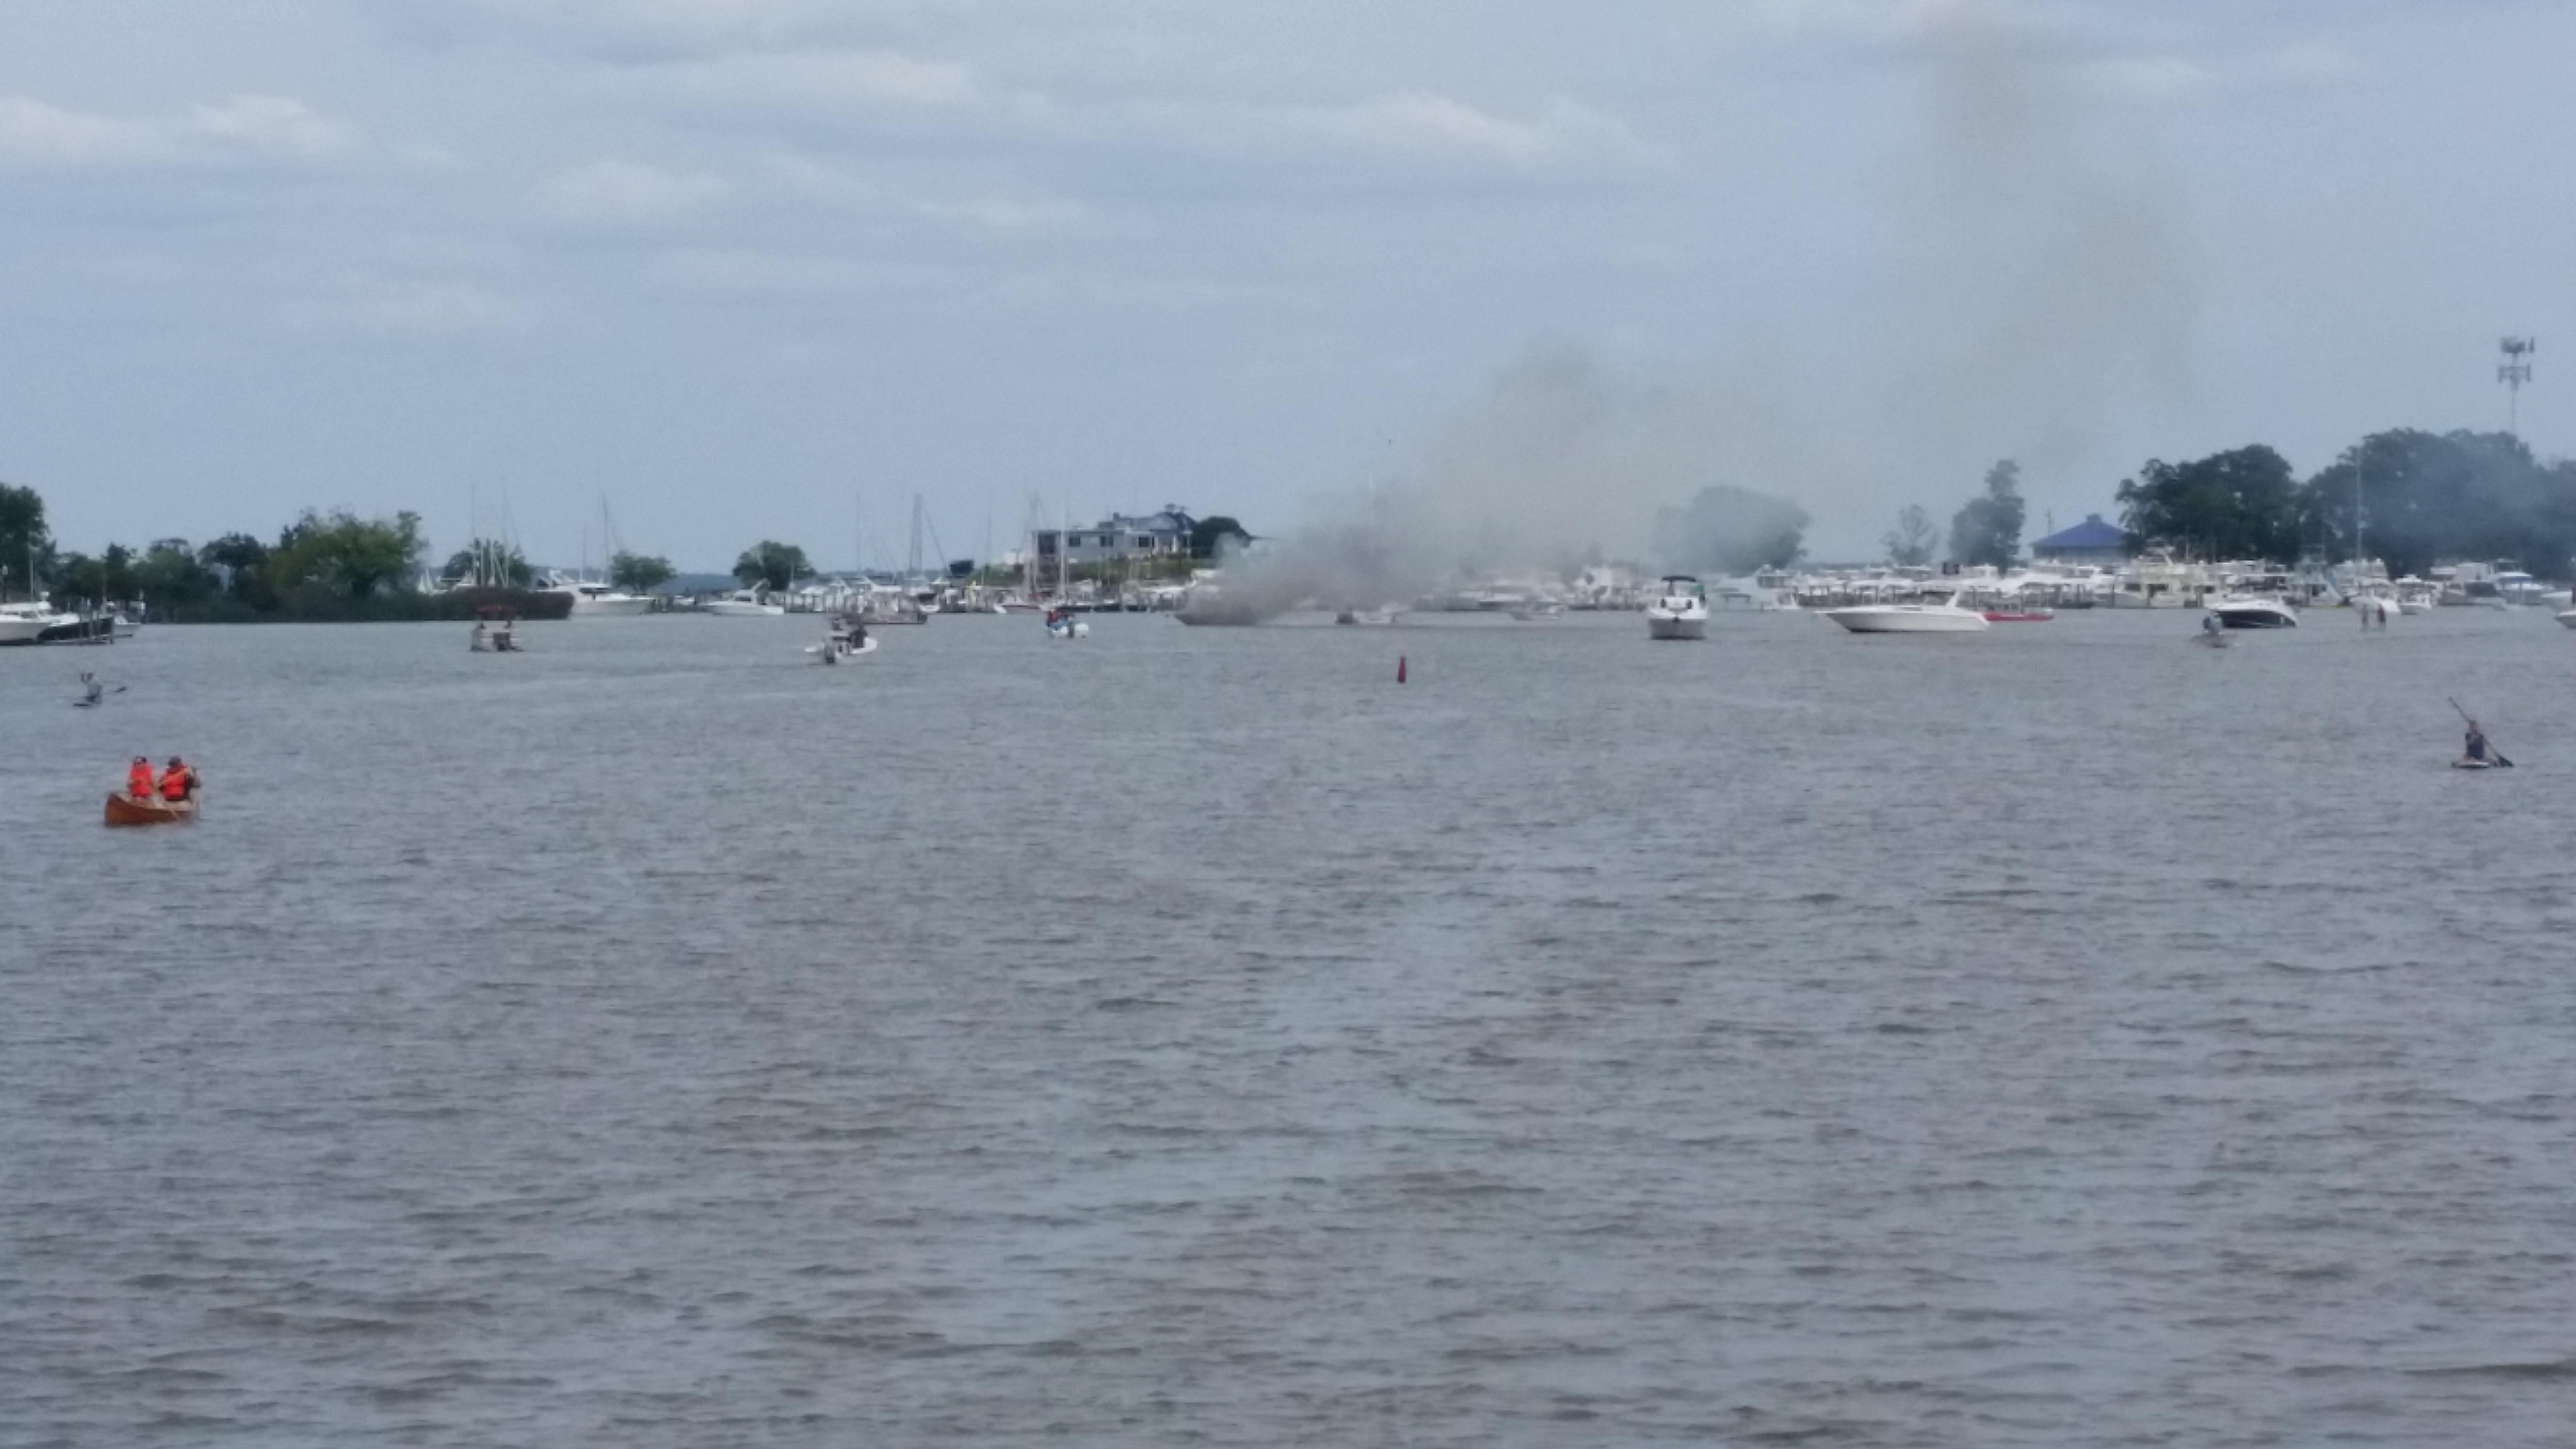 Large boat fire occurs on Sue Creek in Essex on Sunday afternoon. Photo courtesy of Jim Pumphrey.